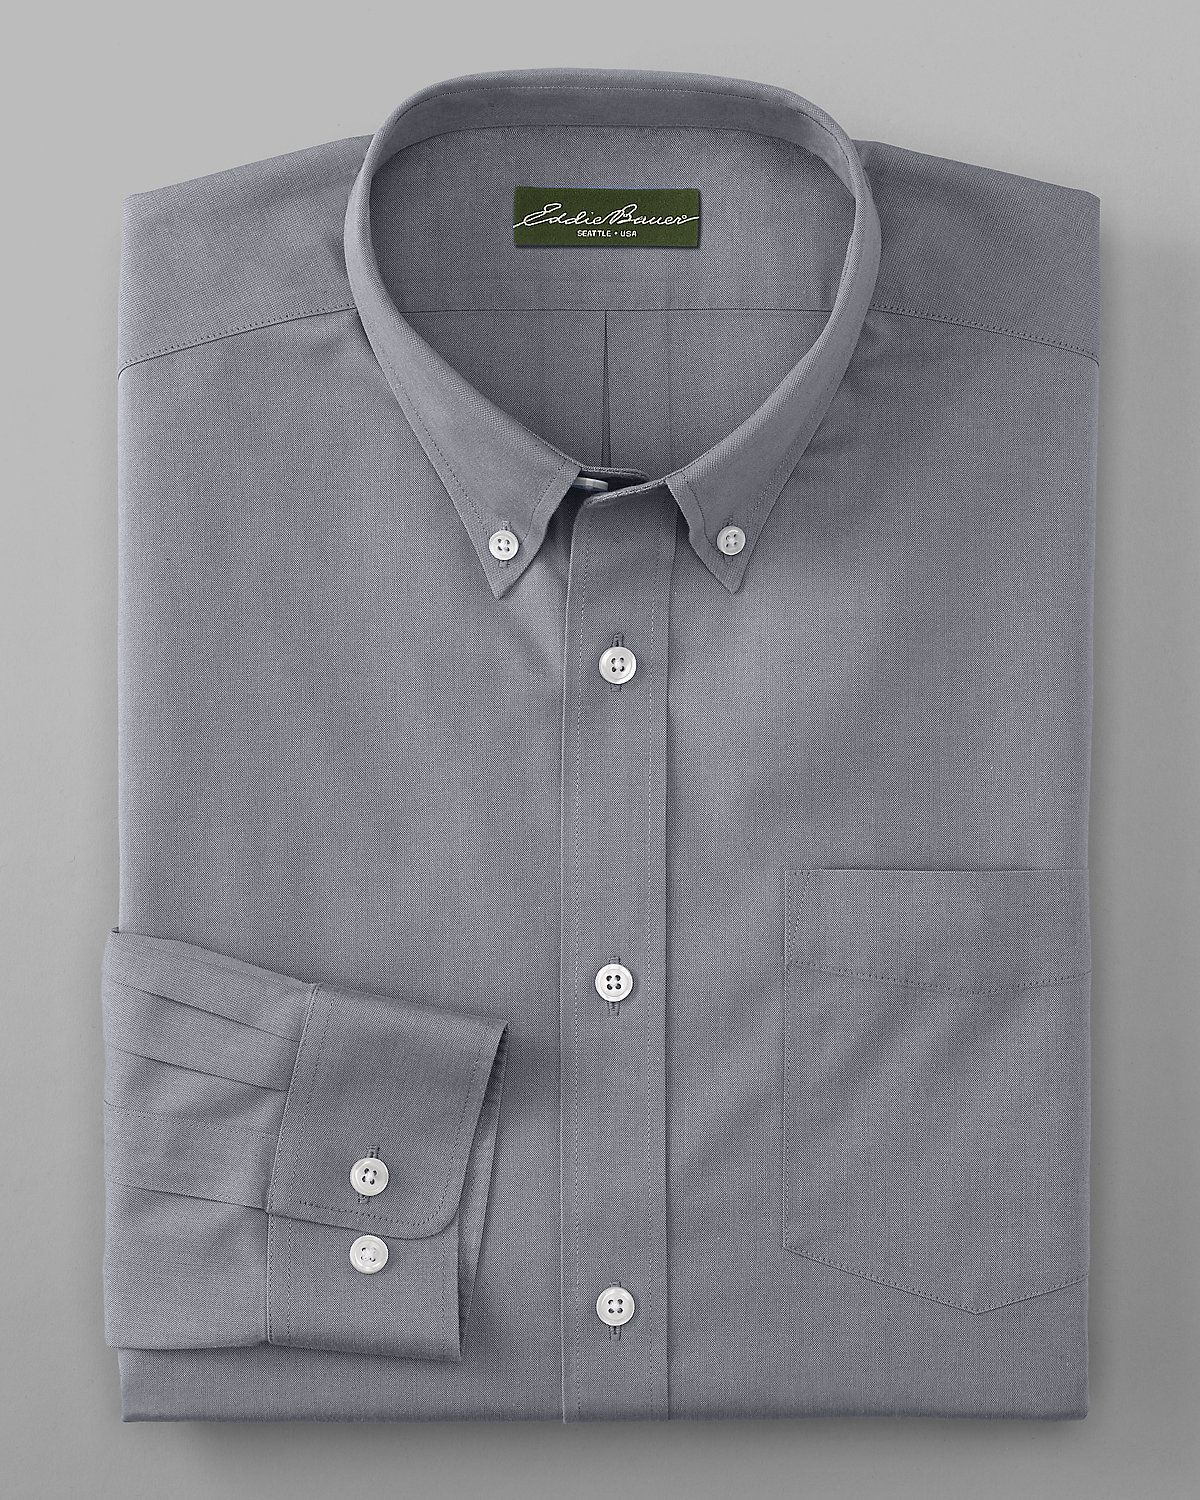 be3c96b4b5 Men s Wrinkle-free Relaxed Fit Pinpoint Oxford Shirt - Solid Long-sleeve